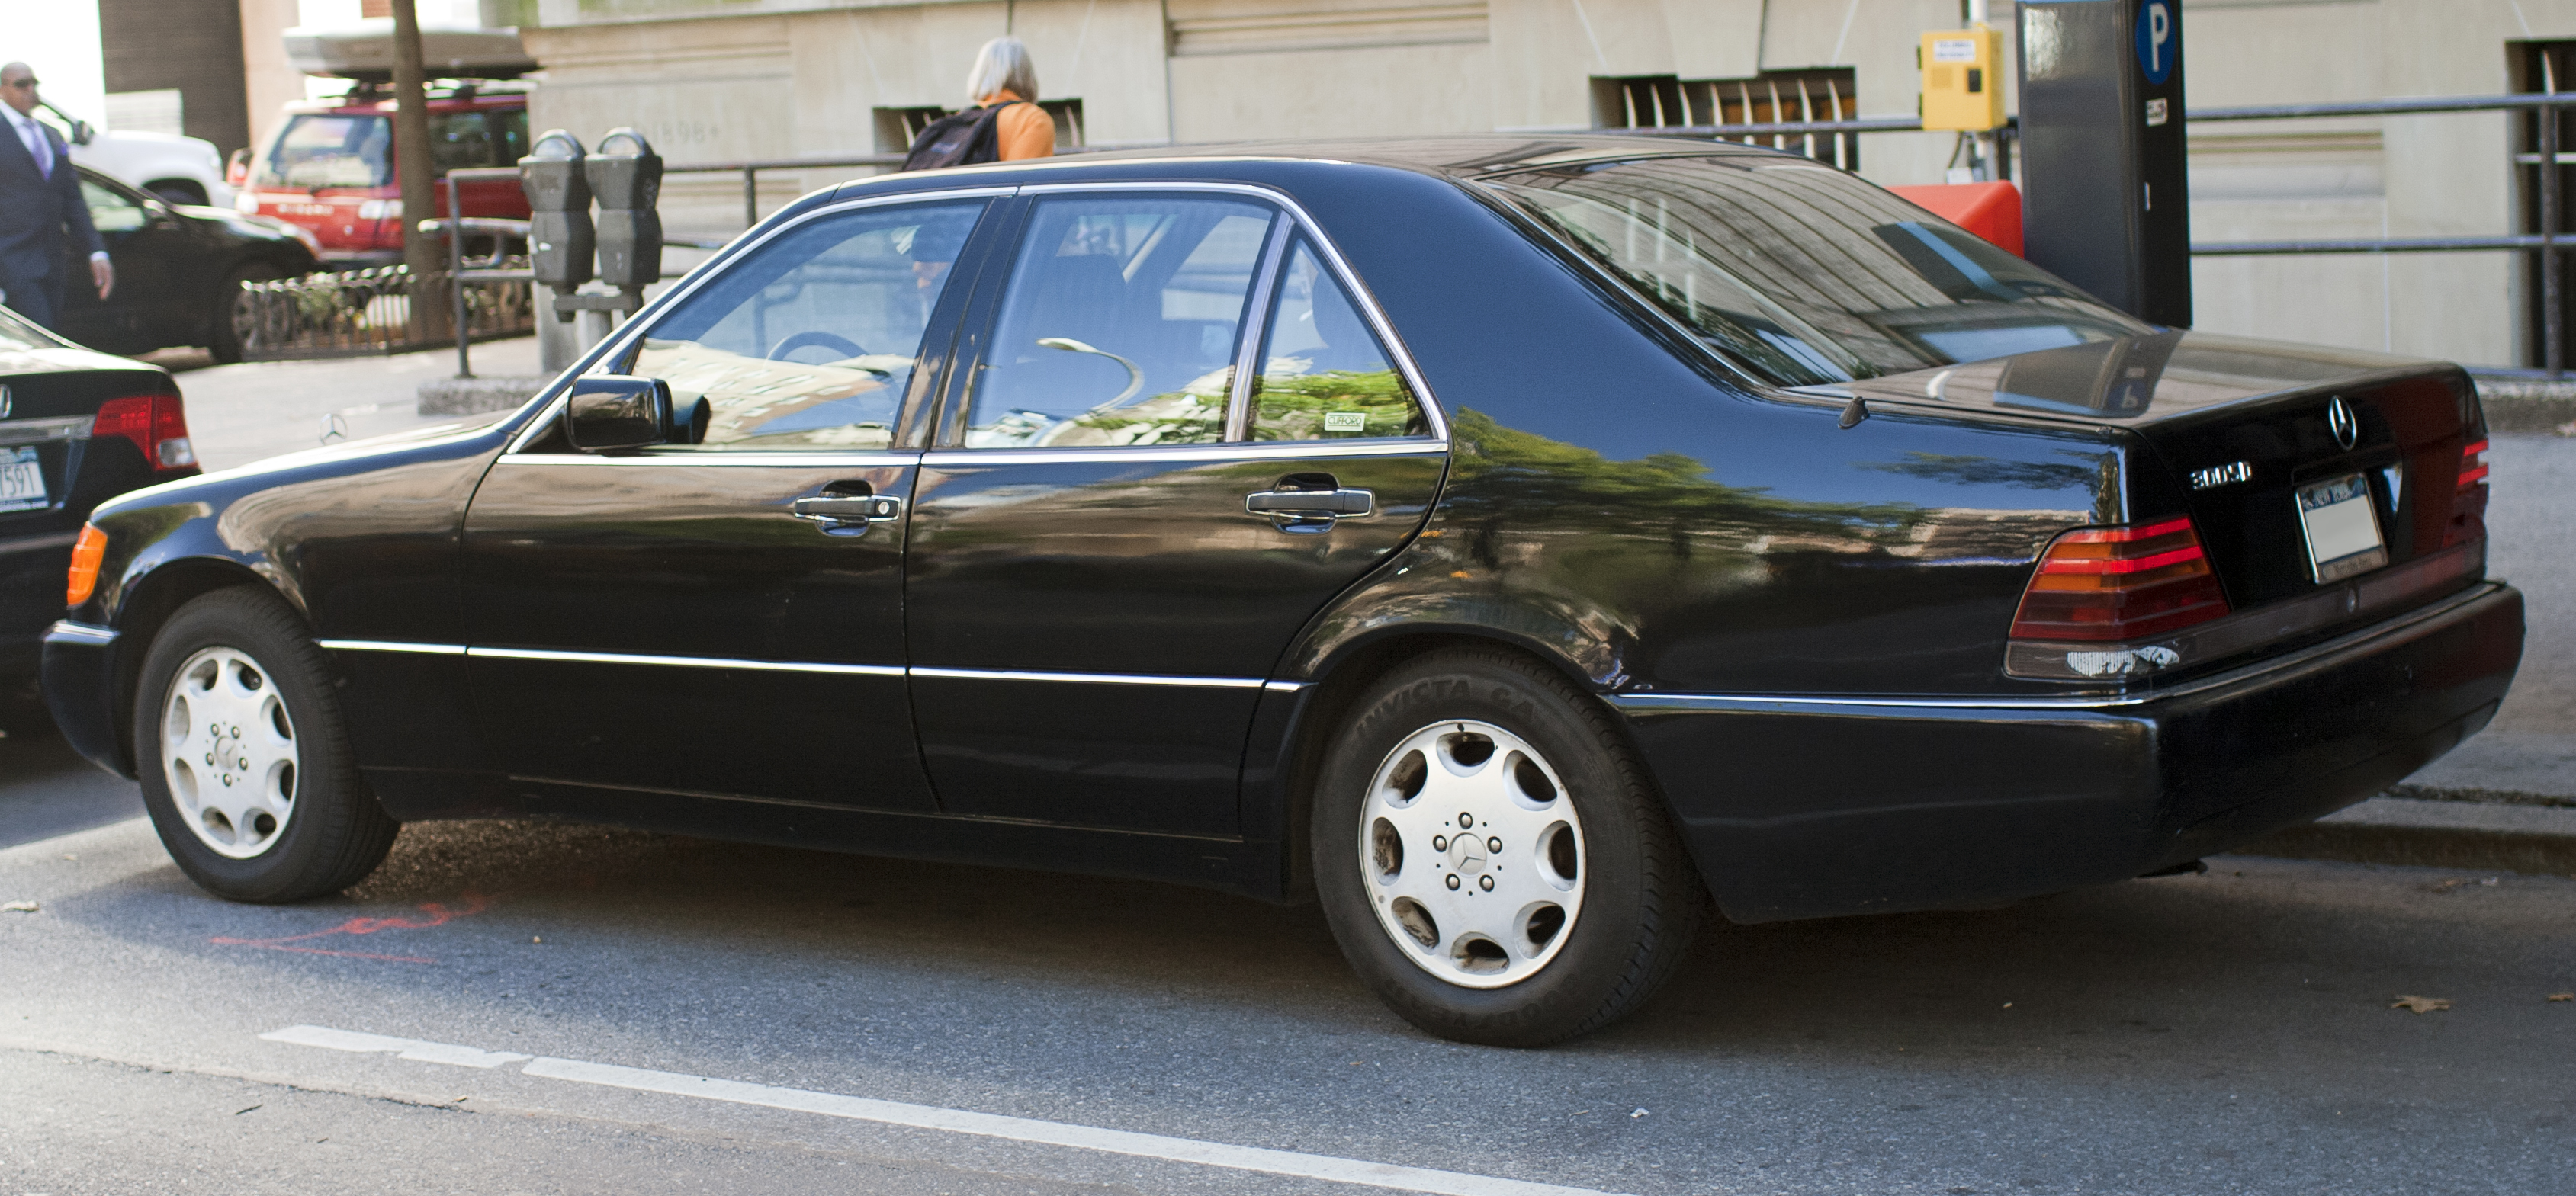 file 1992 mercedes benz wikimedia commons